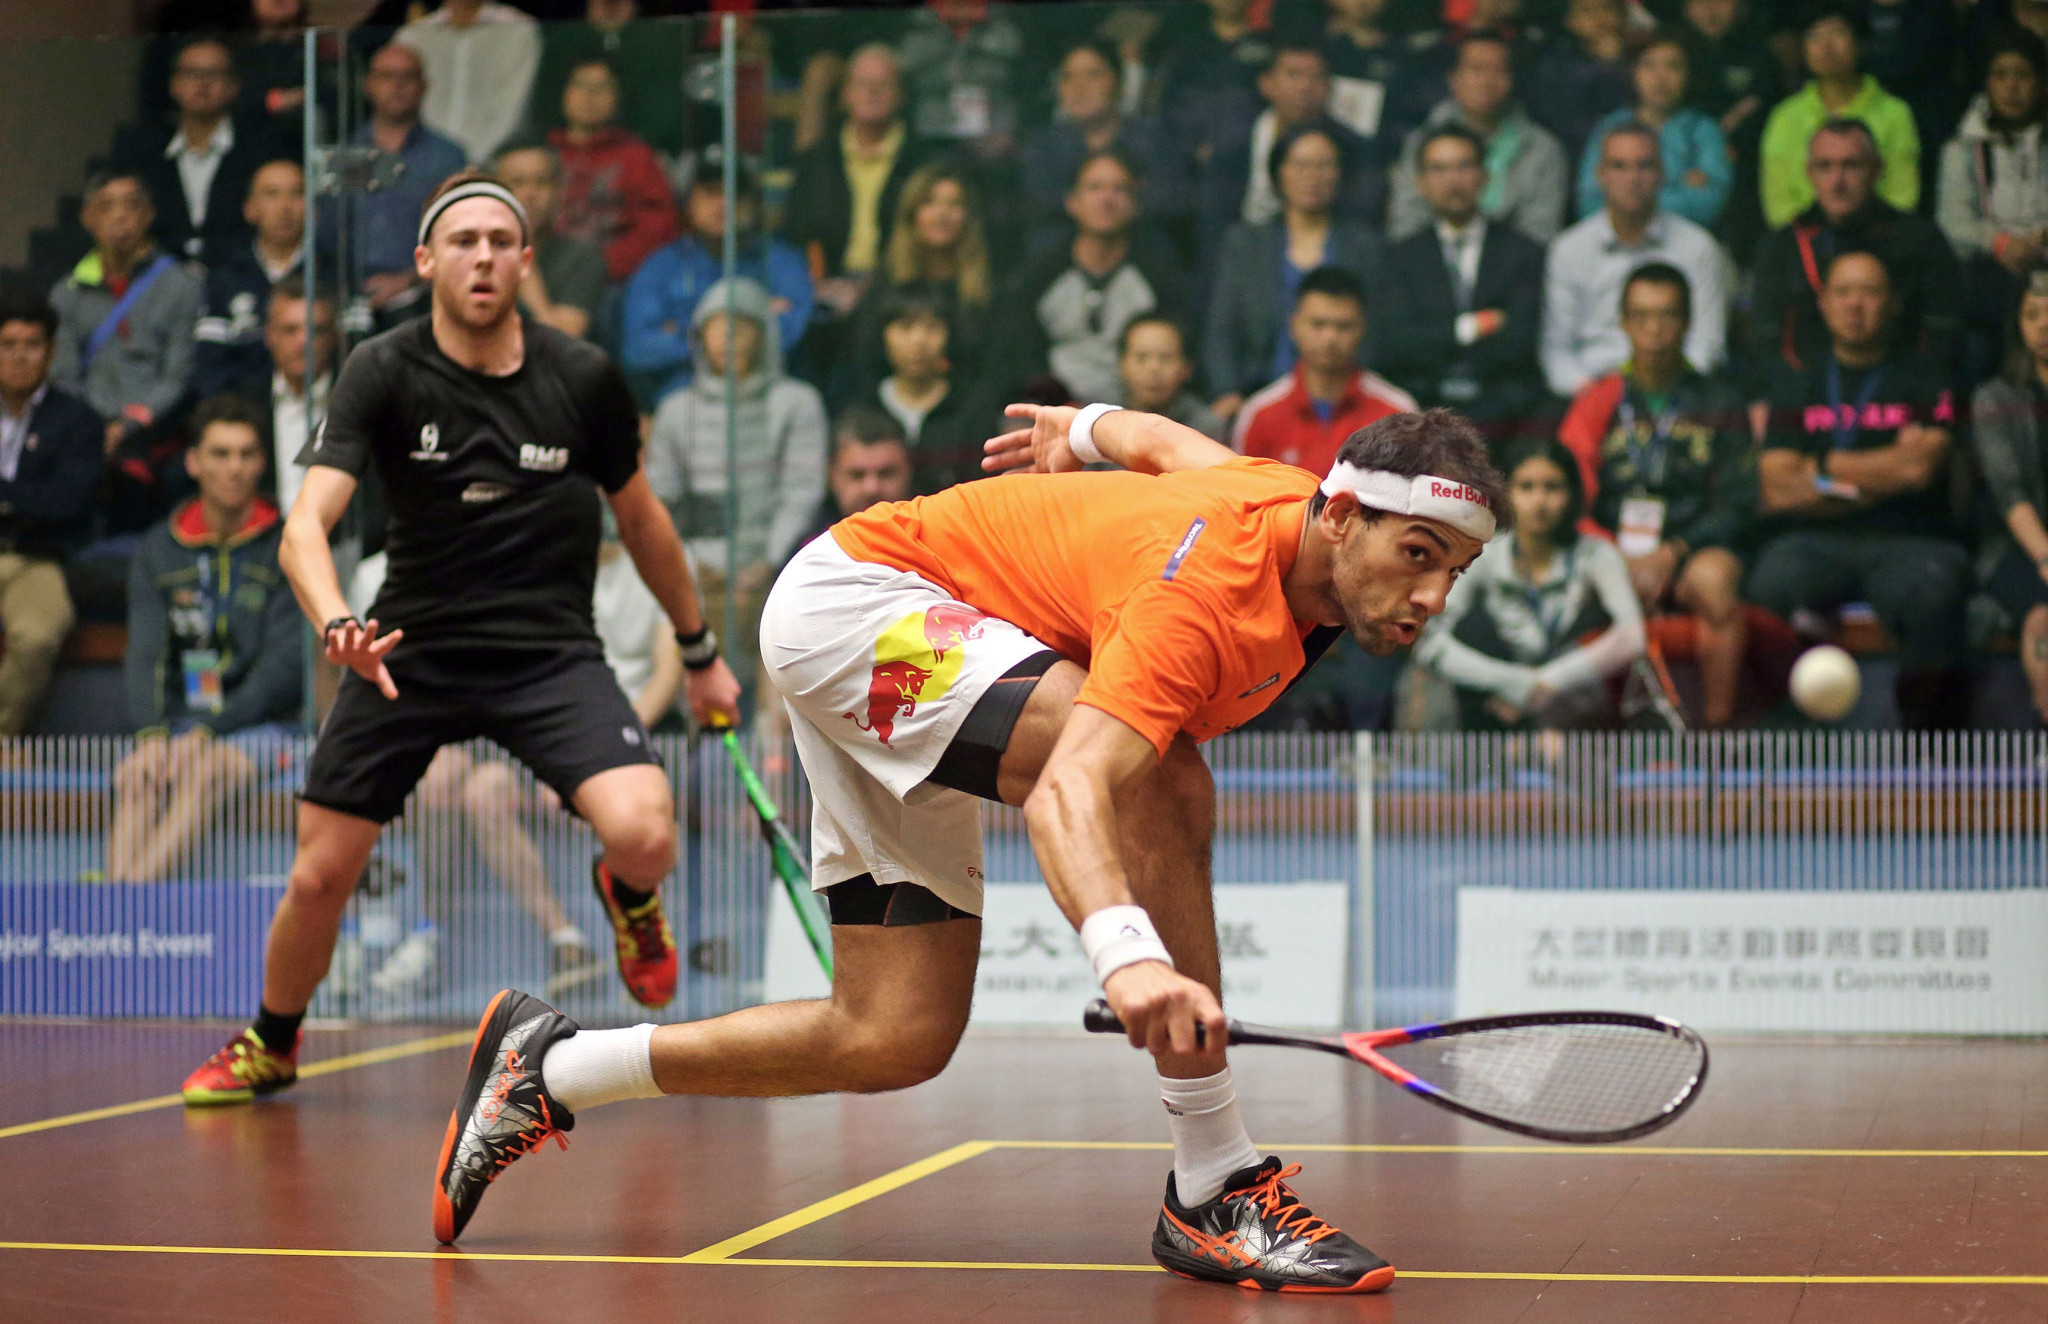 Defending champion Mohamed Elshorbagy of Egypt beat Australia's Ryan Cuskell to win his first game of the PSA Hong Kong Open ©PSA